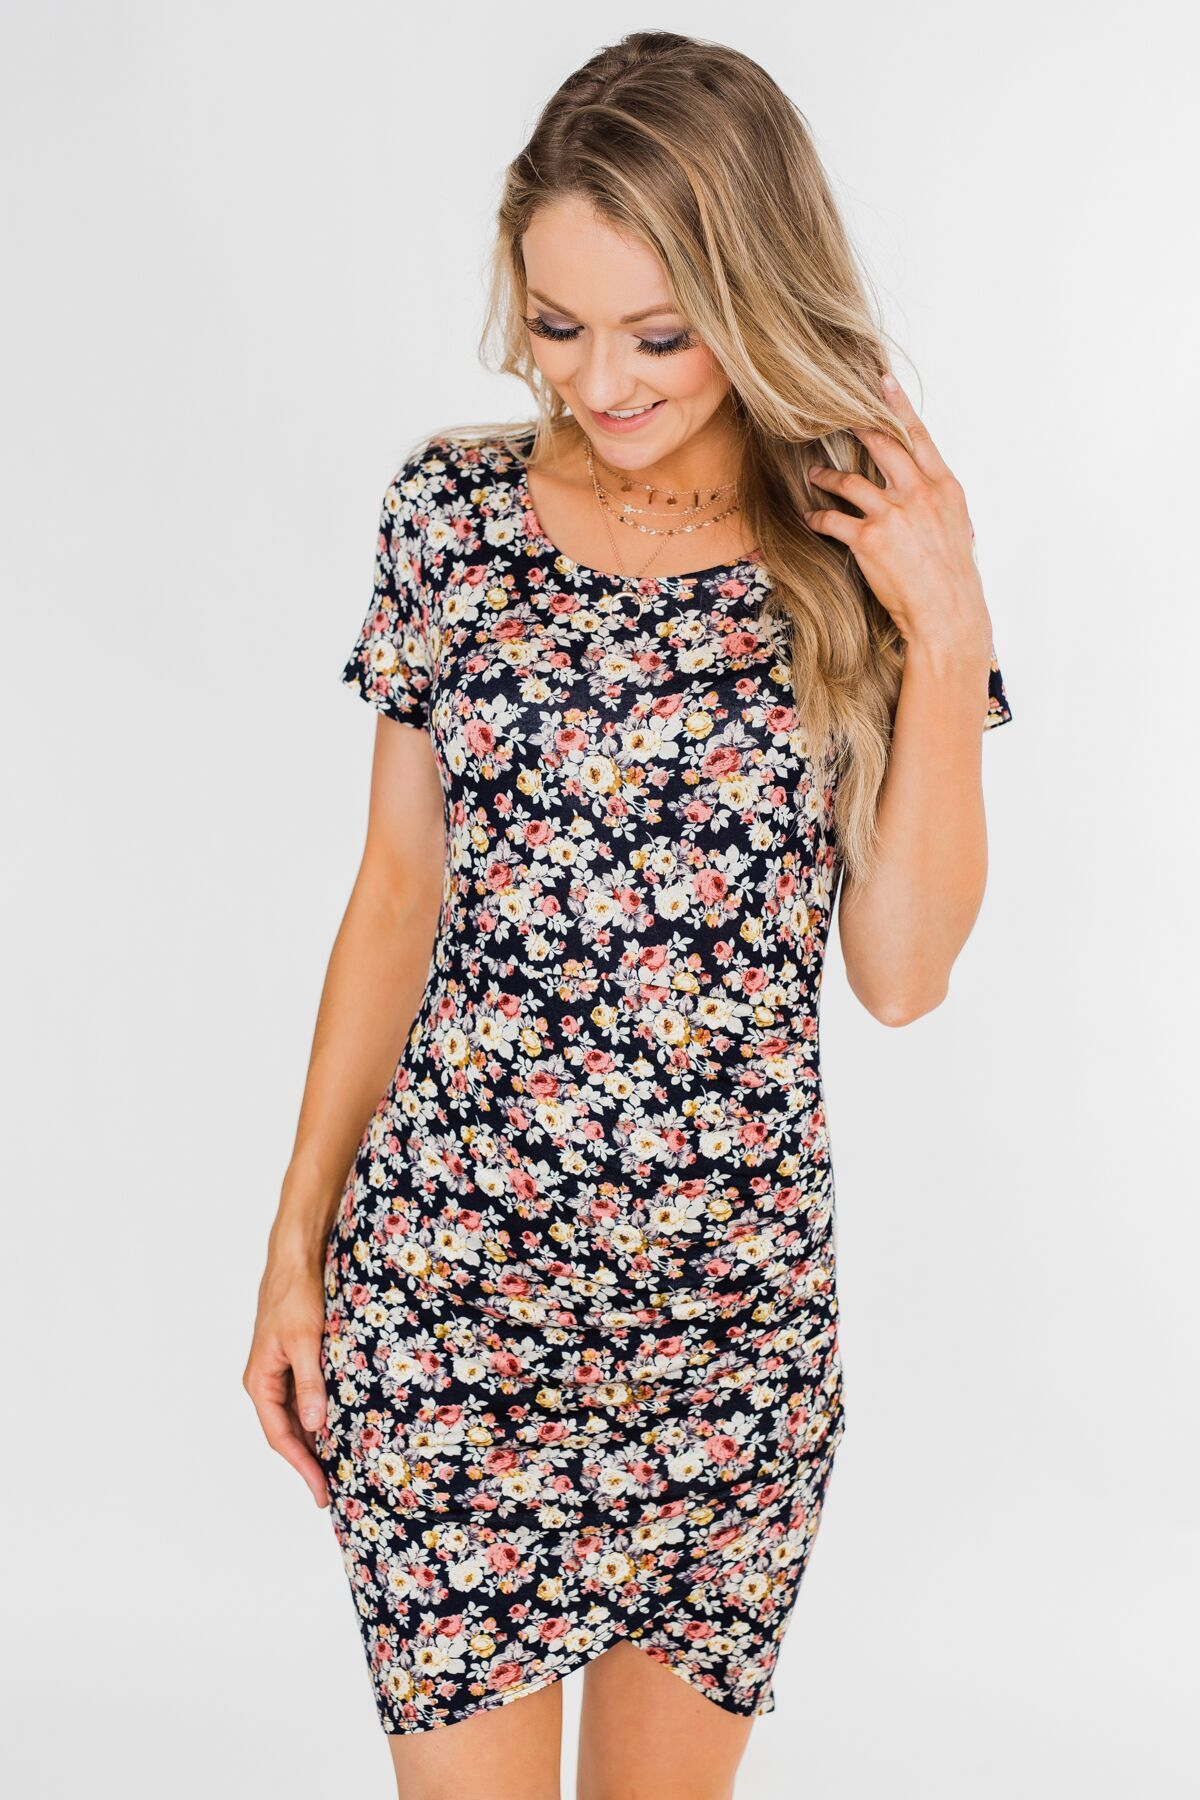 Floral Take Me Away Short Sleeve Dress- Navy